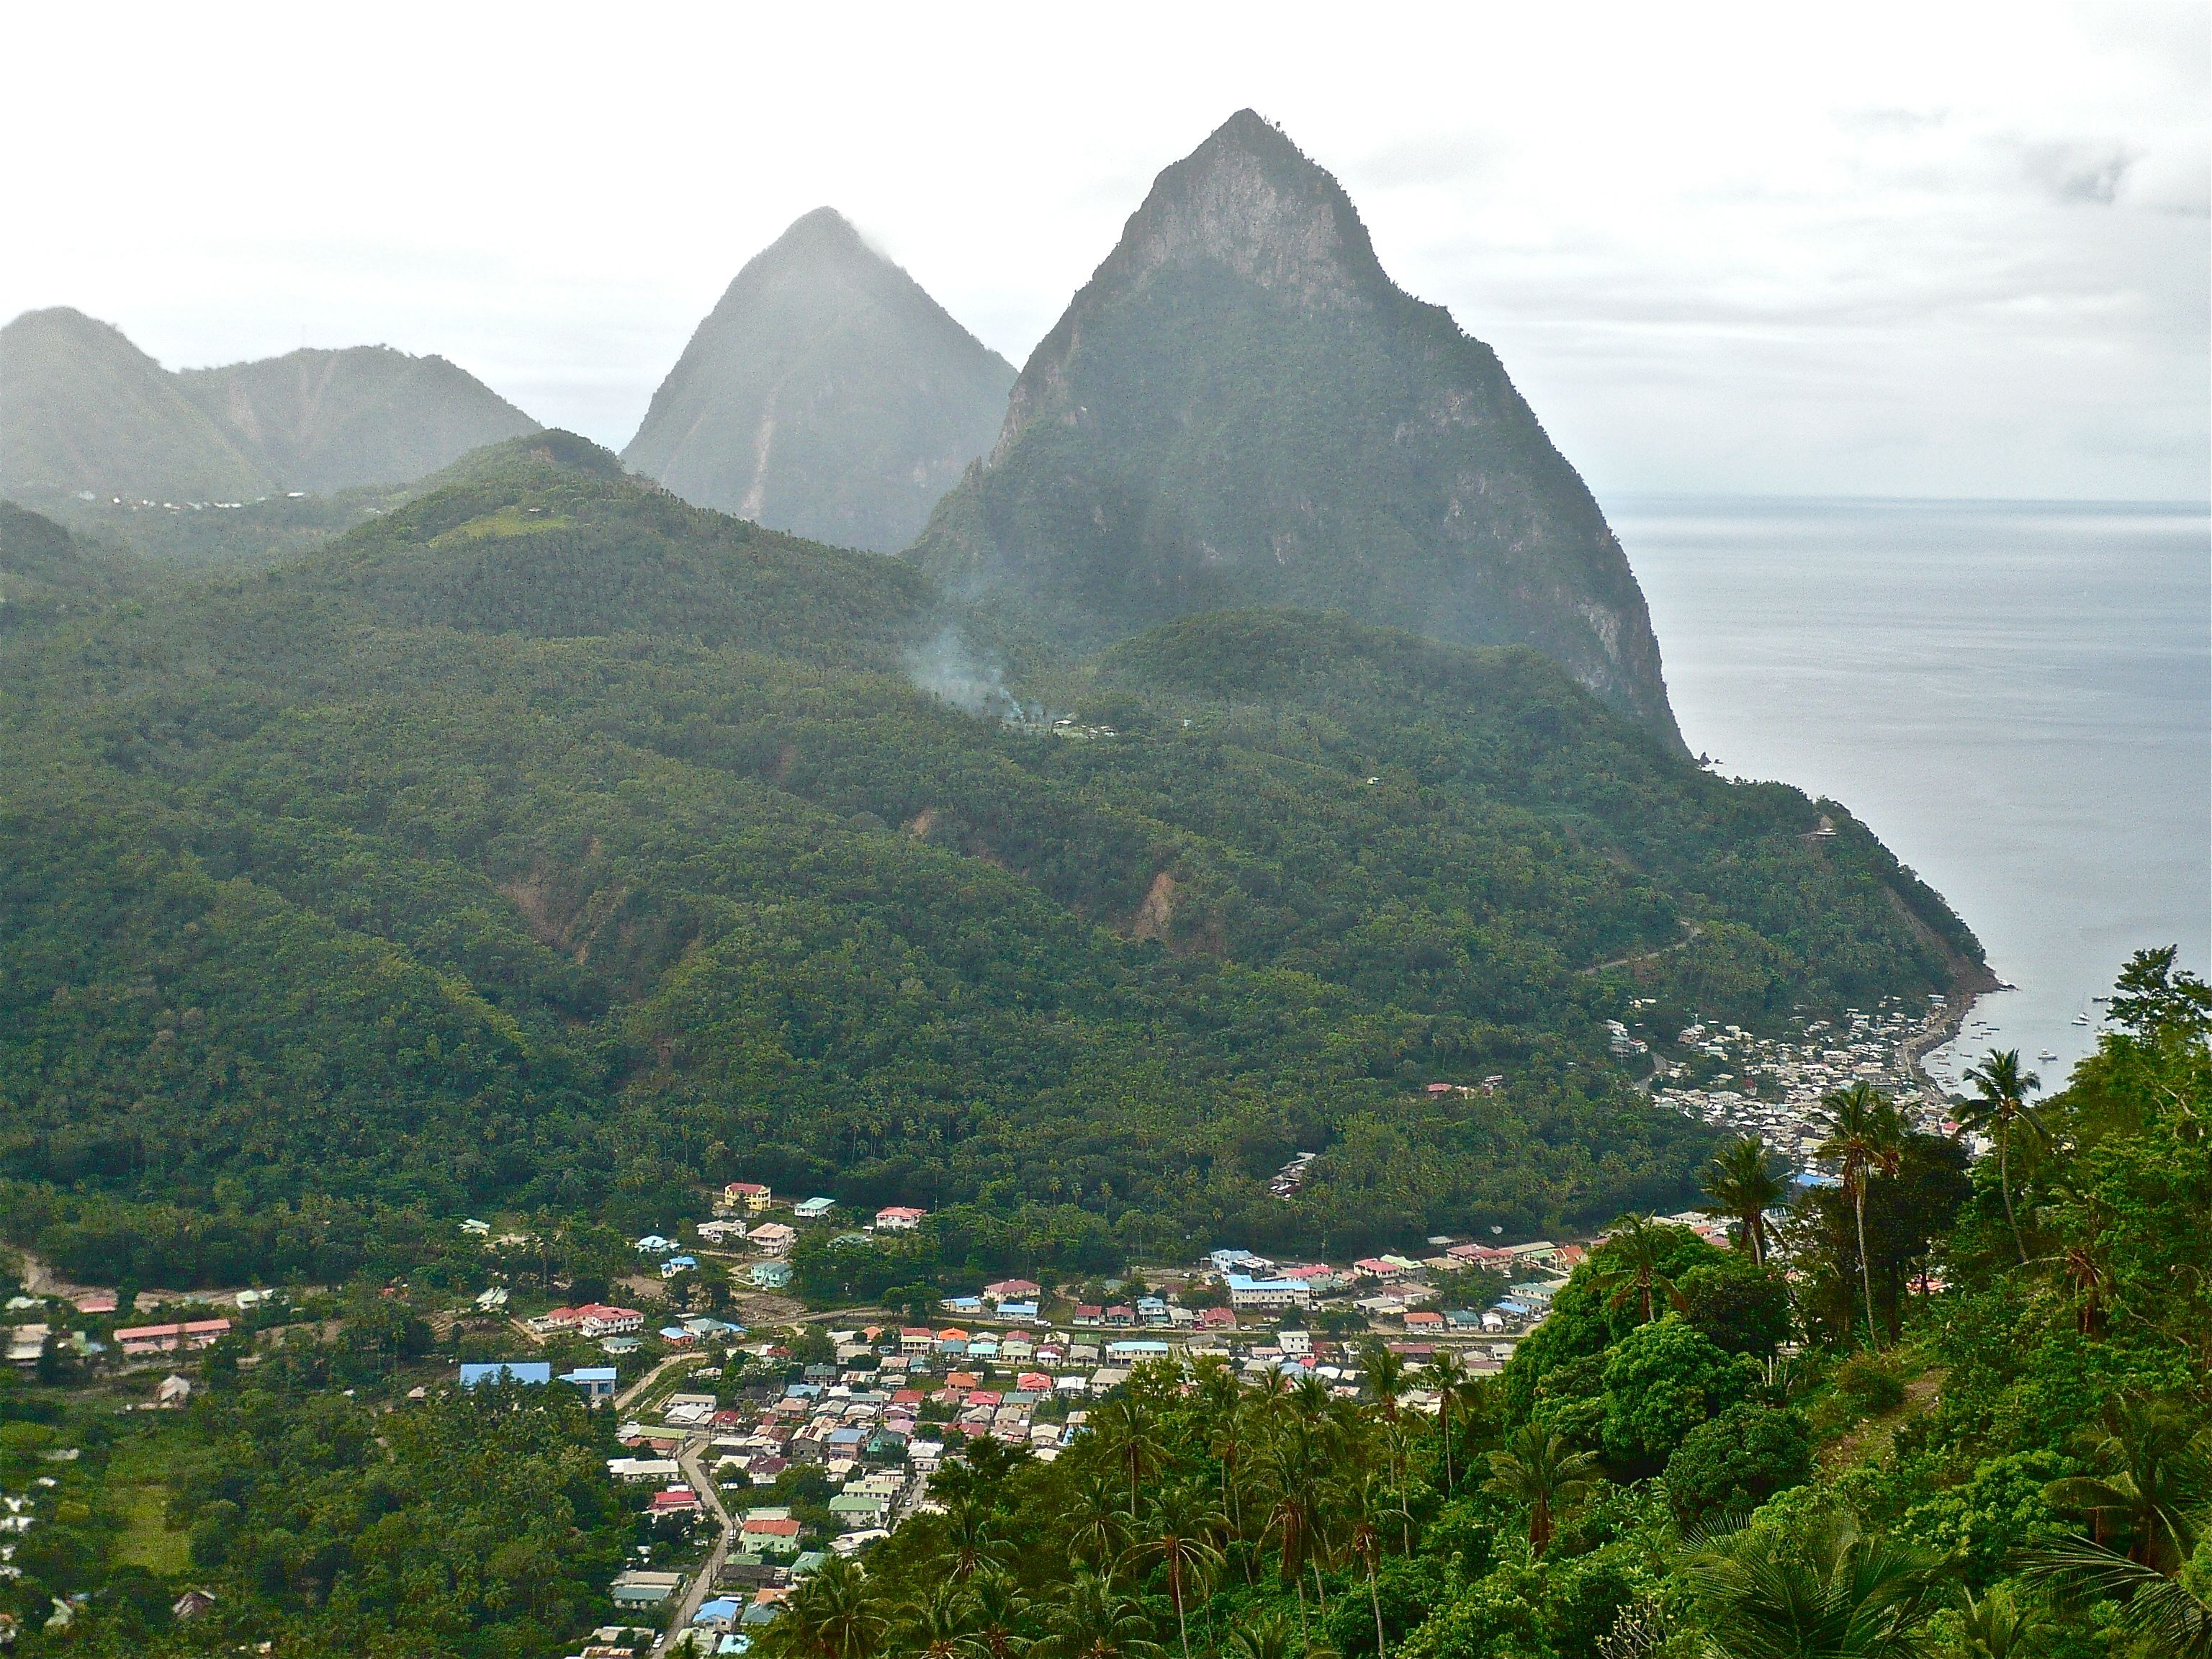 Admire the spectacular Pitons